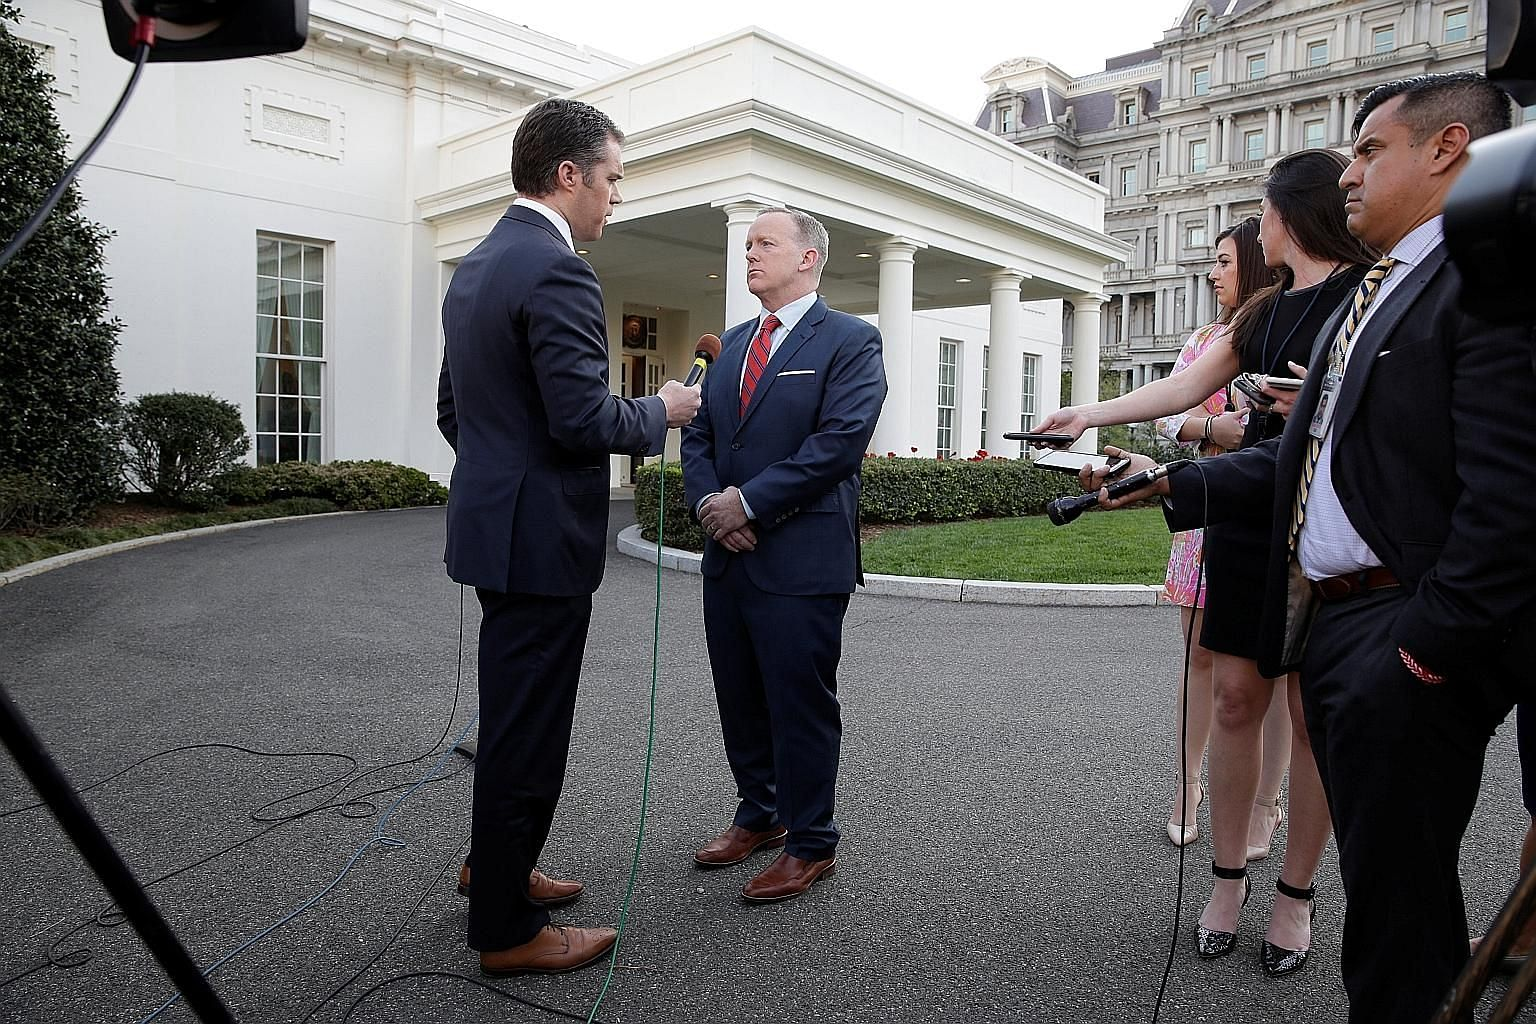 White House press secretary Sean Spicer continues to face increasing backlash and calls for his resignation after he compared Syria's President Bashar al-Assad with Adolf Hitler and denied that Hitler had used chemical weapons to kill millions of Jew